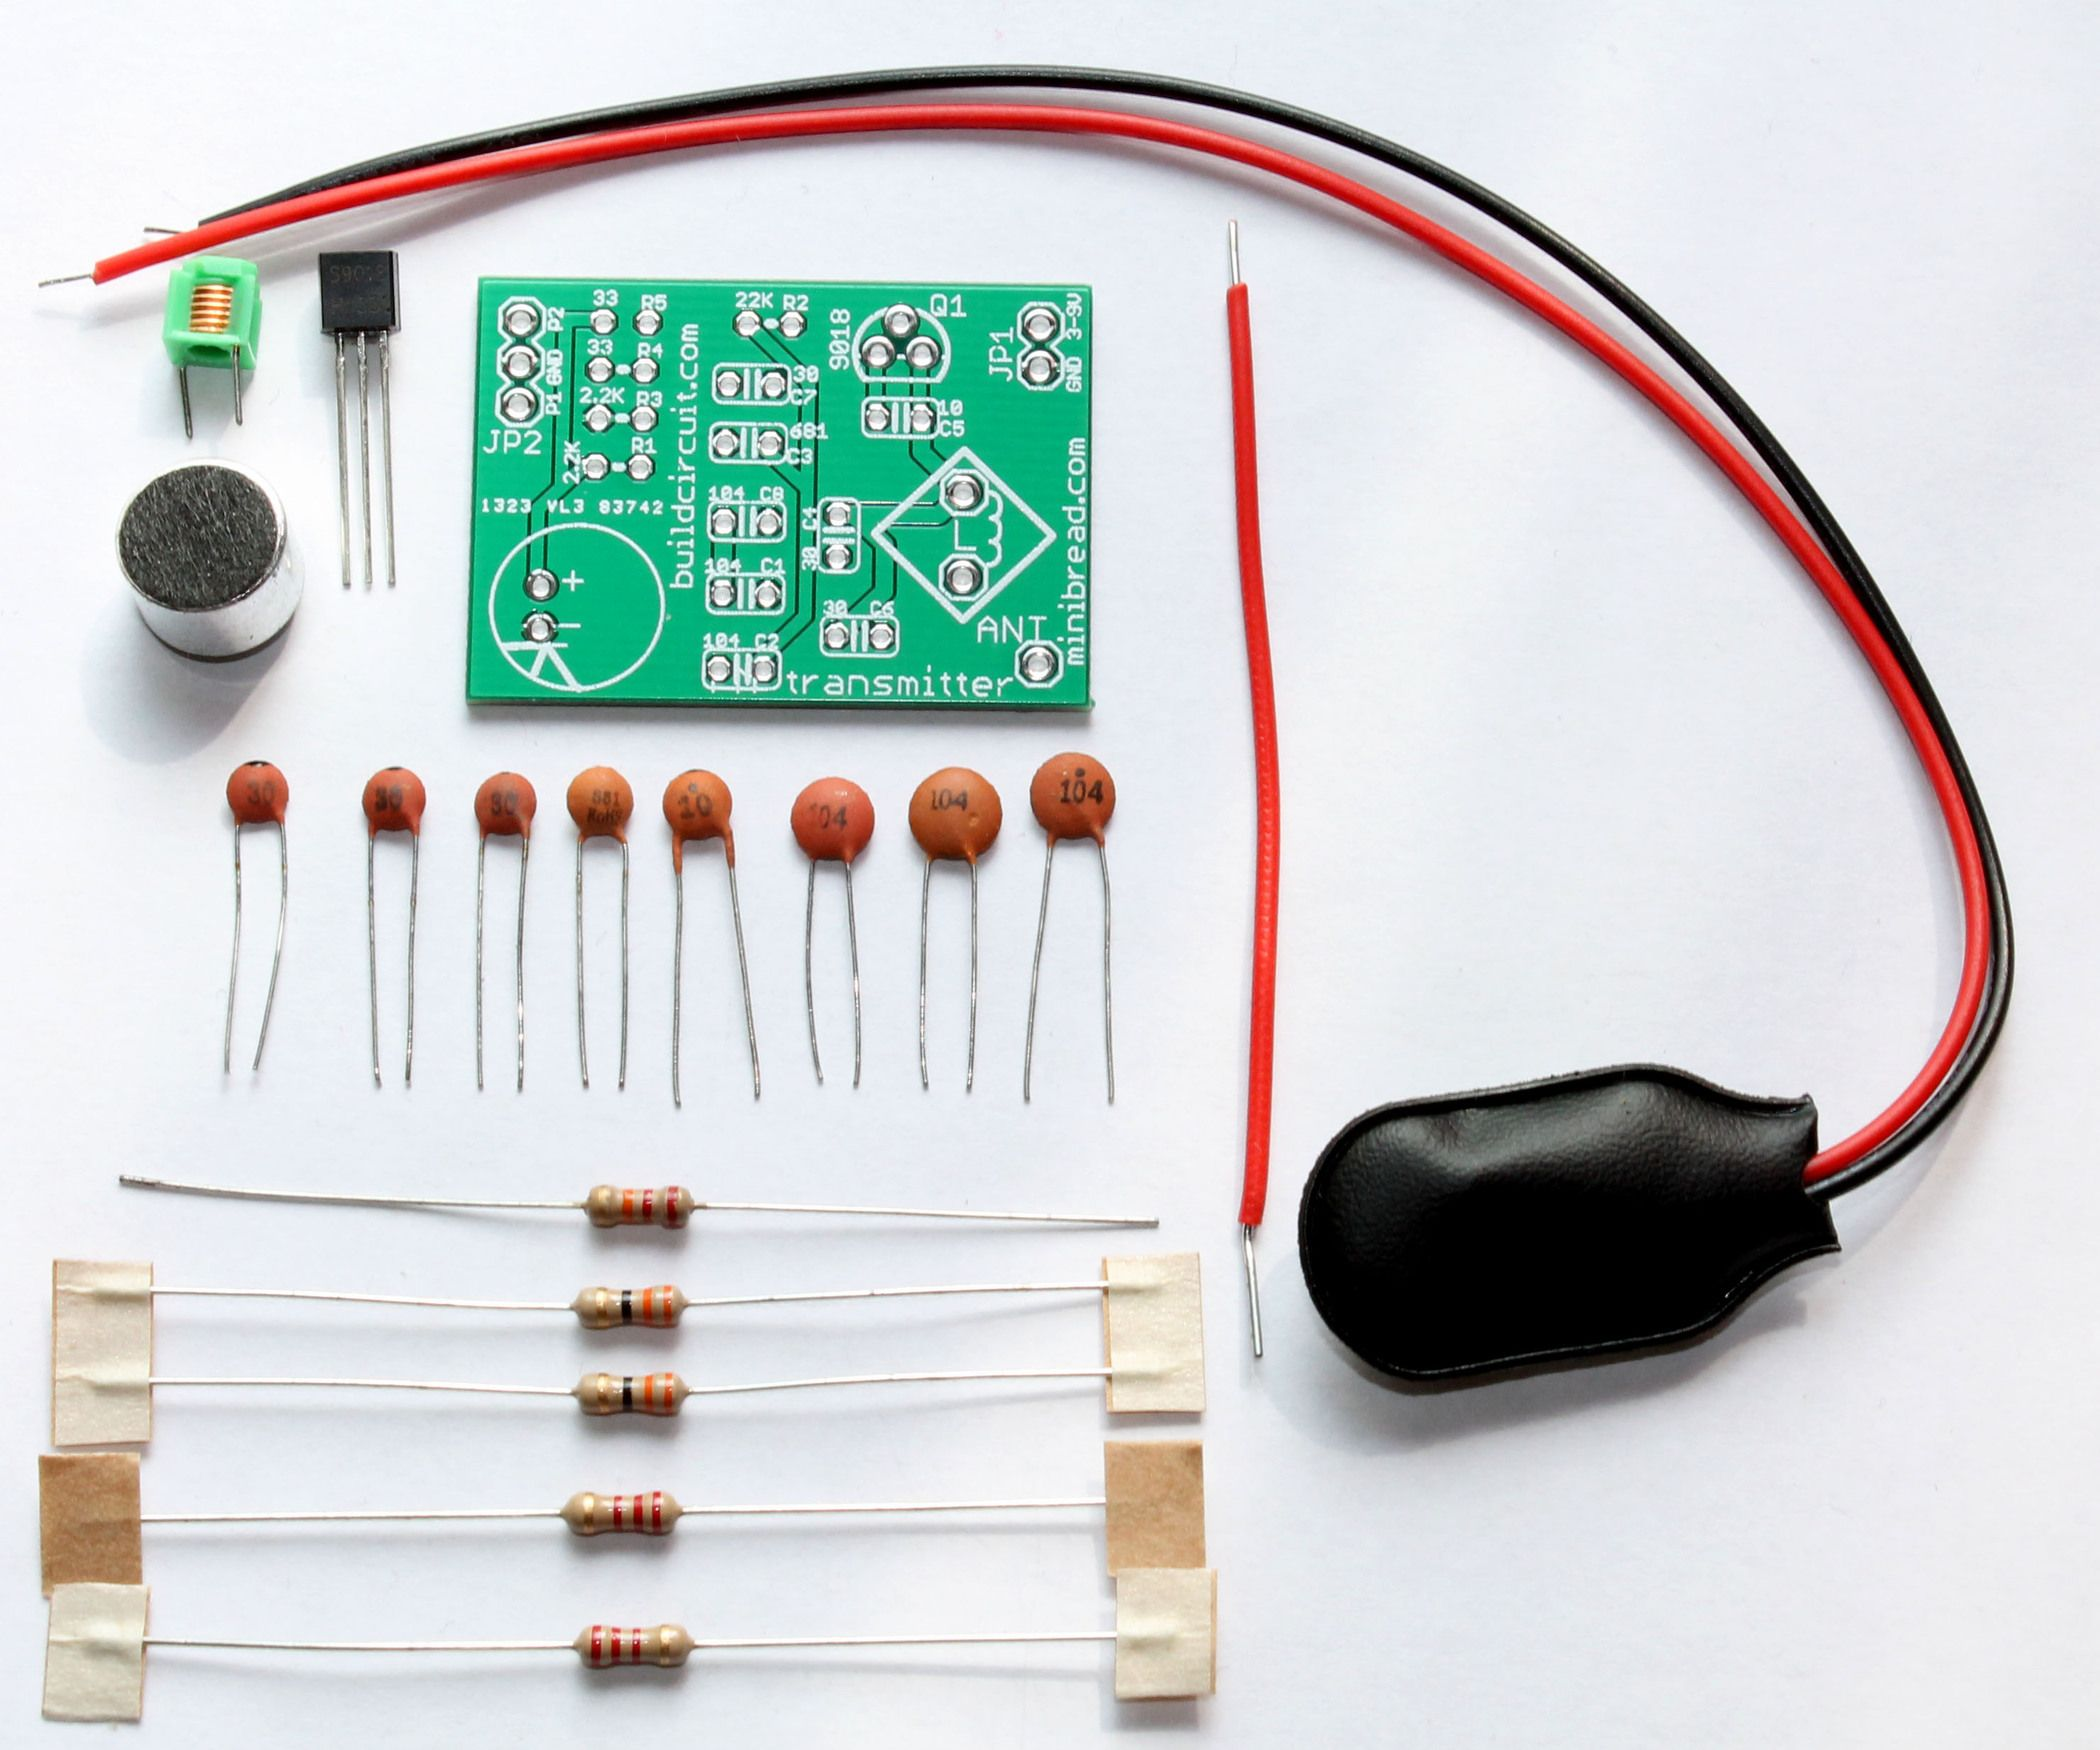 Easy and Low Cost FM Transmitter DIY Kit | Diy electronics